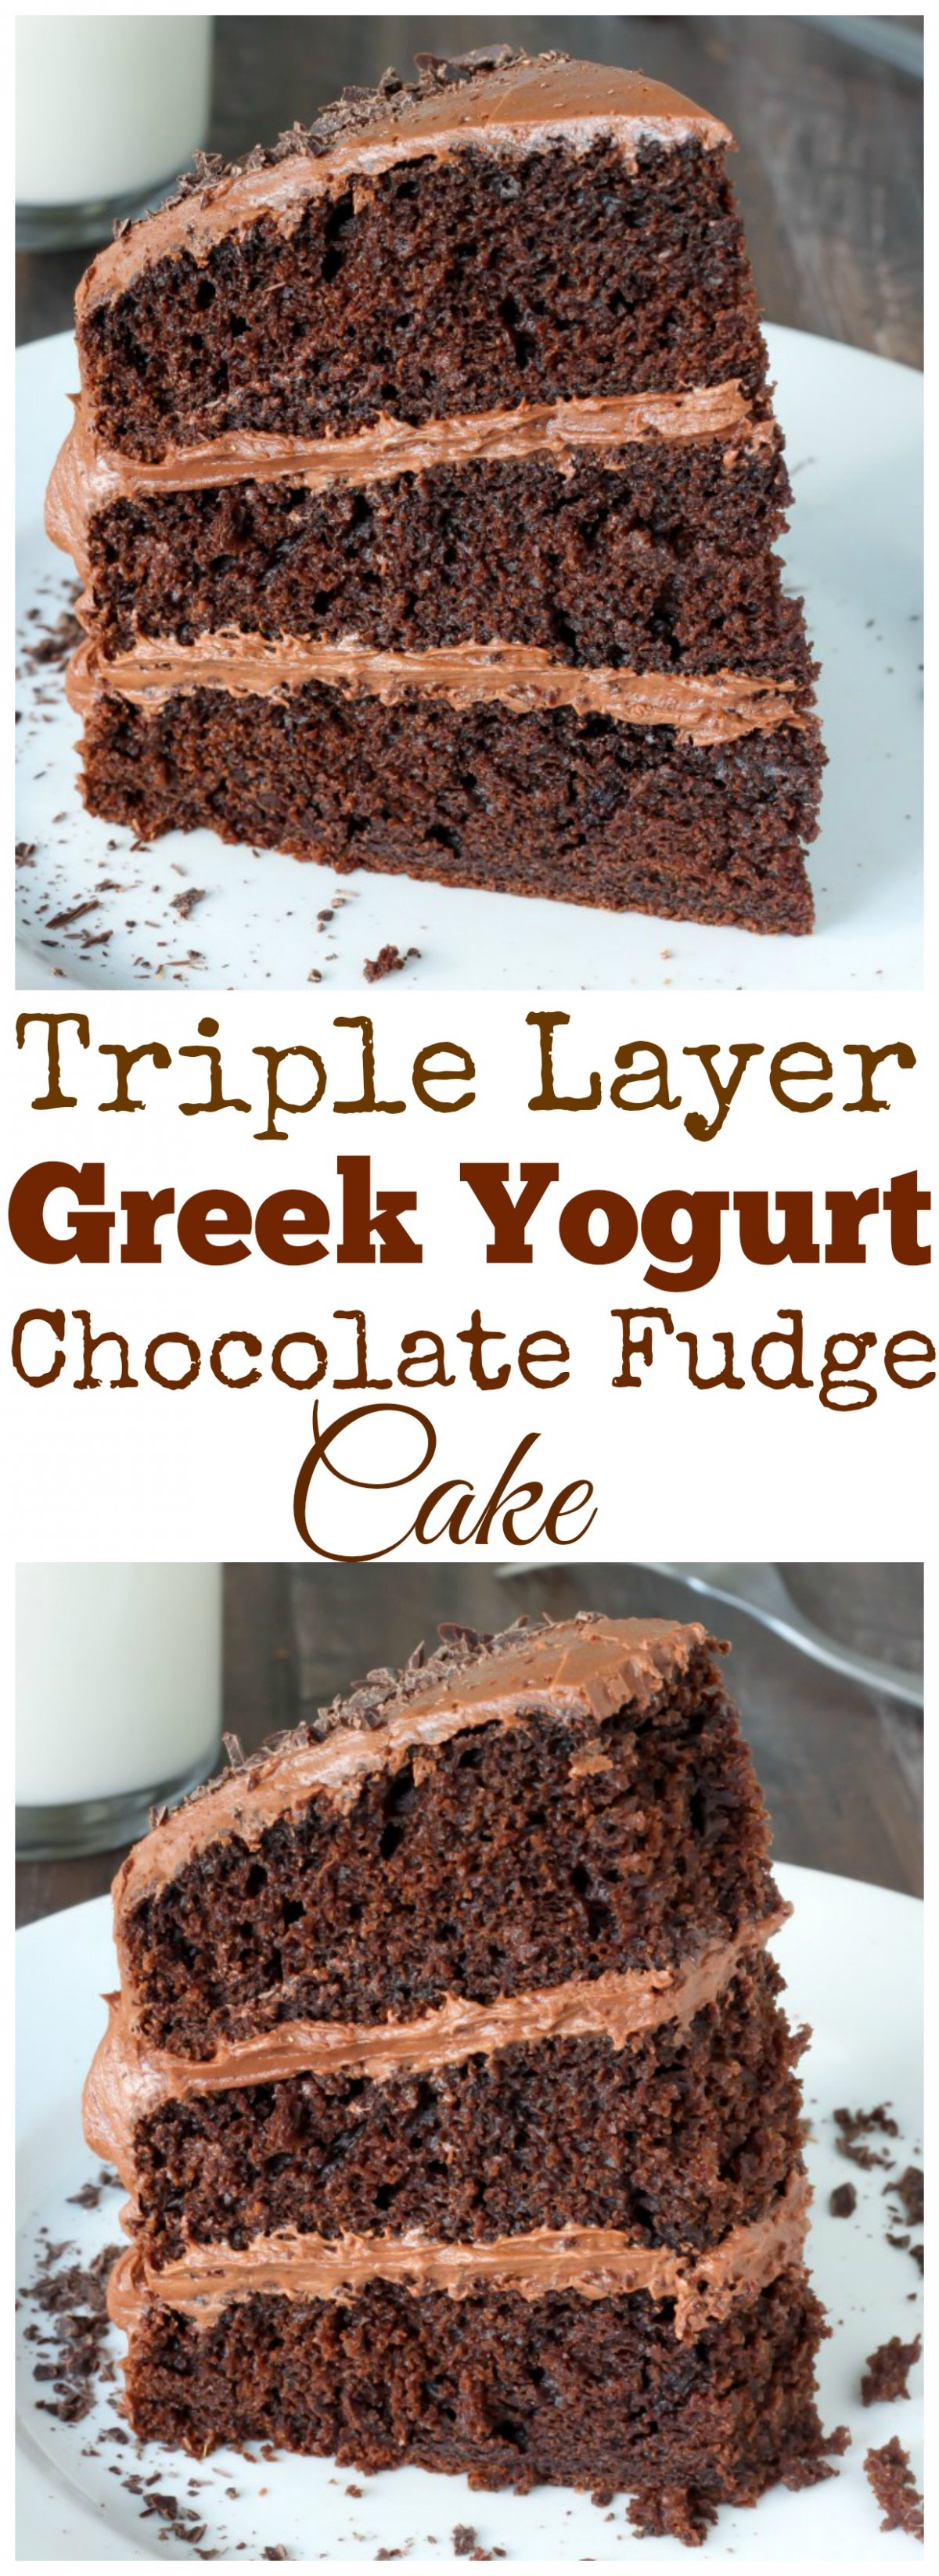 Chocolate Cake Mix And Greek Yogurt